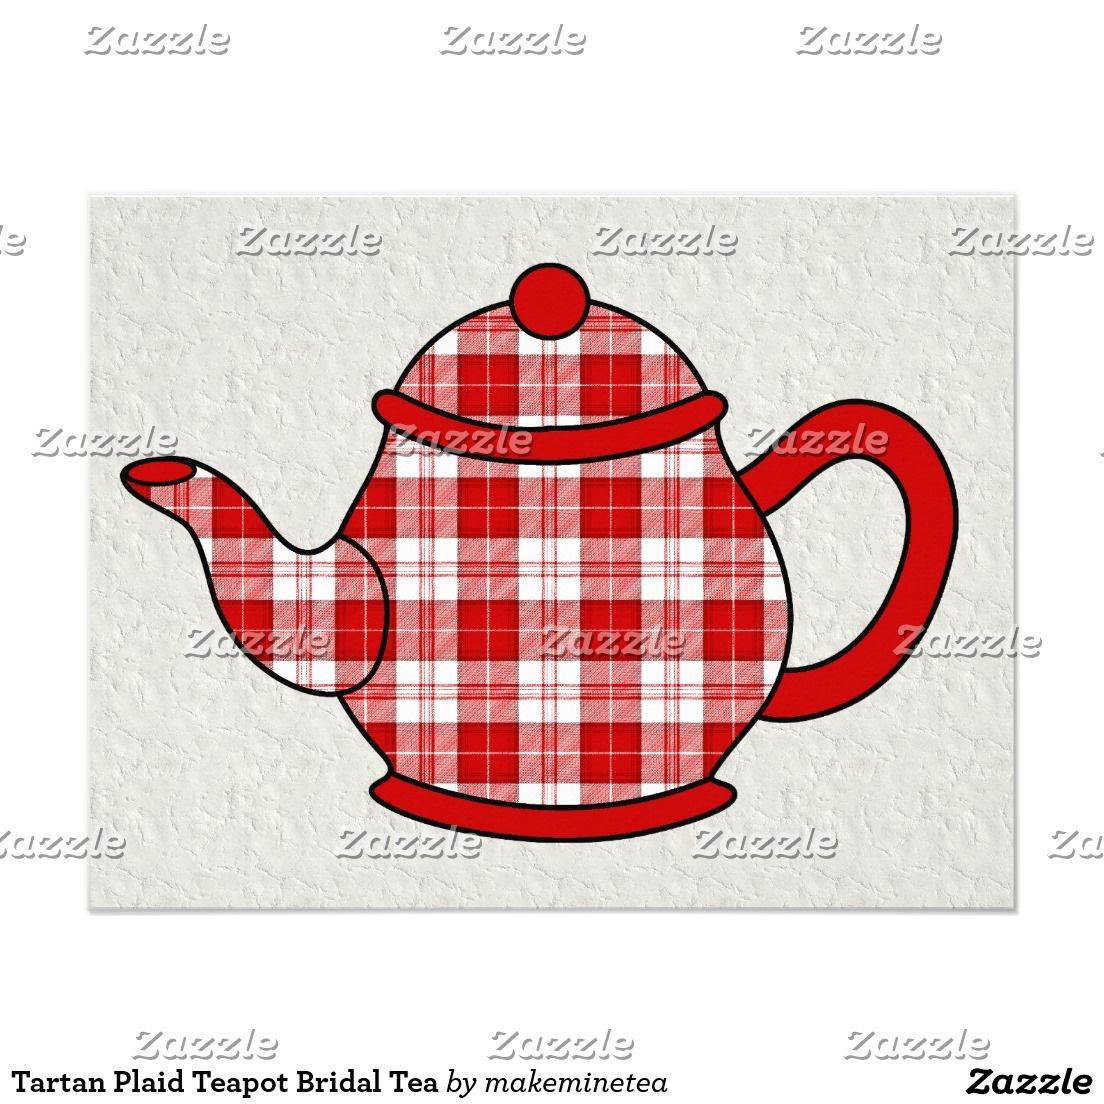 Tartan Plaid Teapot Bridal Tea | TARTAN WEDDING Invitations ...